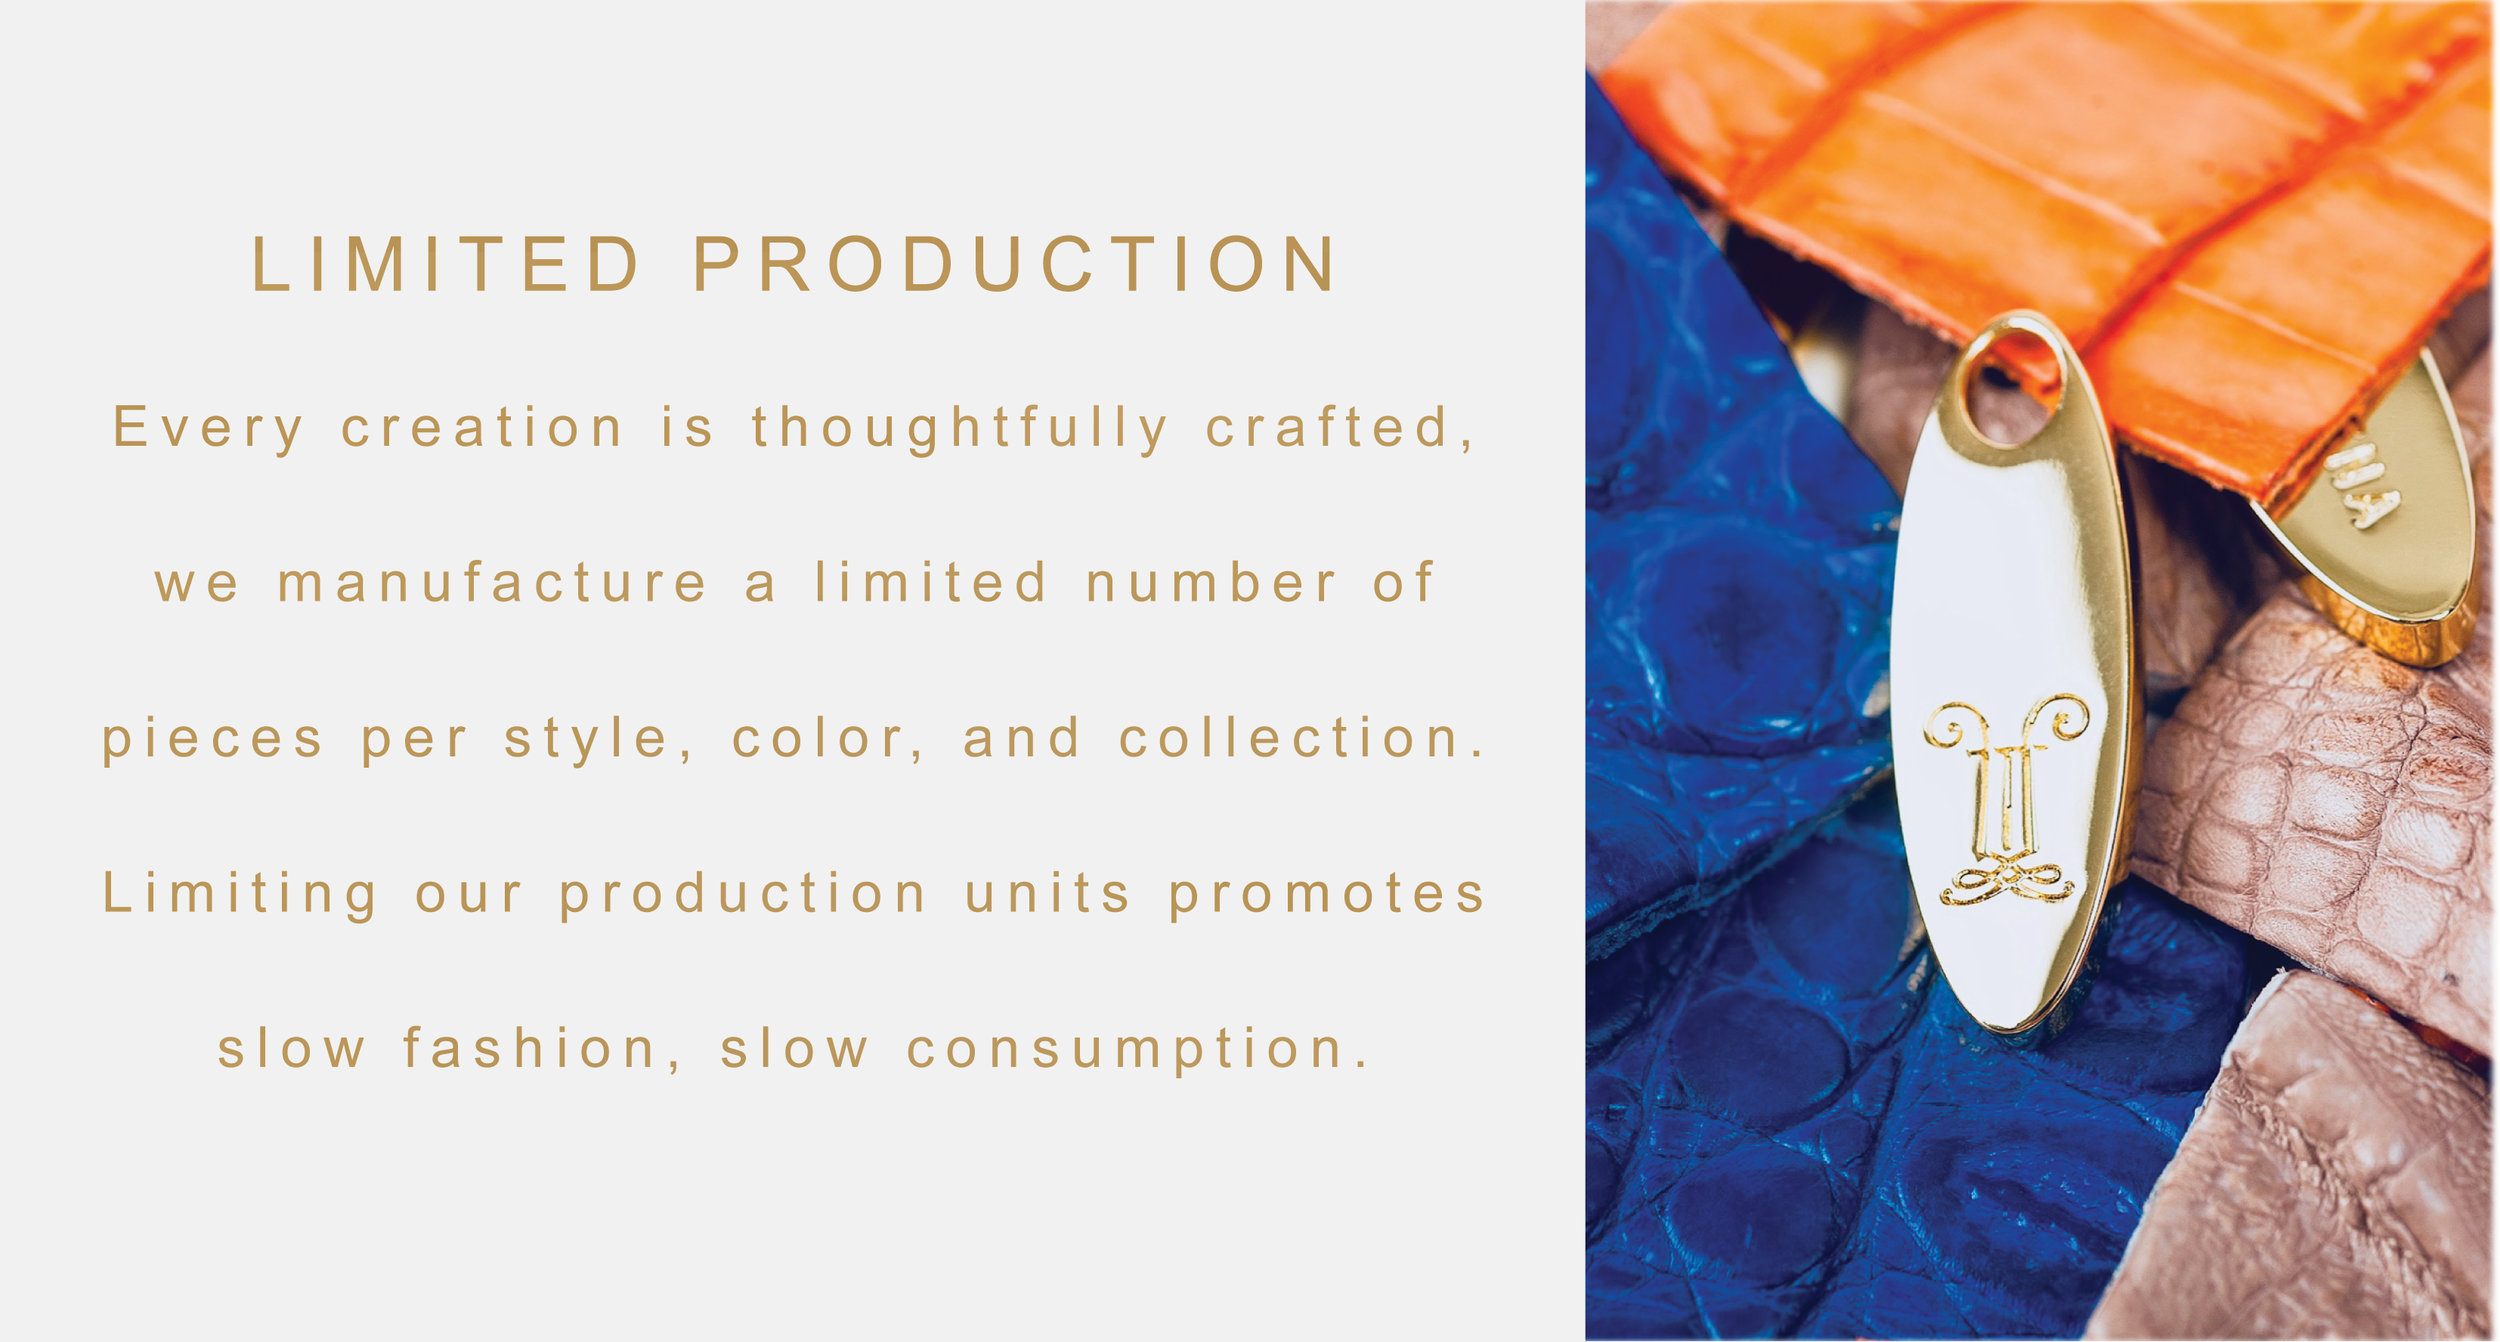 FOR WEBSITE_OUR ETHOS_LIMITED PRODUCTION_3_26_2019.jpg